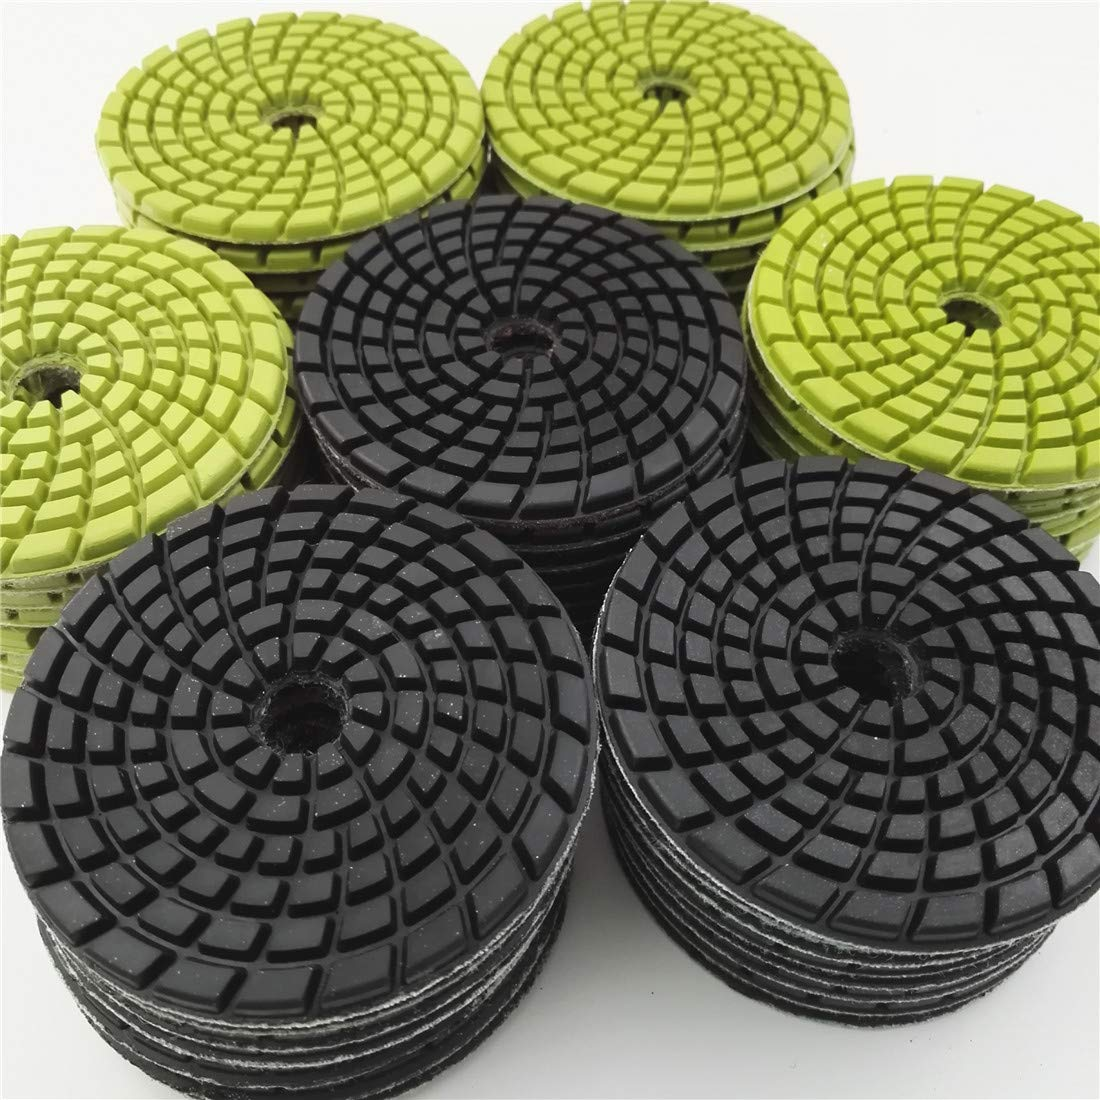 DIATOOL Diamond Concrete Polishing Pads 4inch Resin Bond Renew Pads Beton Floor Renew Reparing Disk Mixed Grits Pack of 12